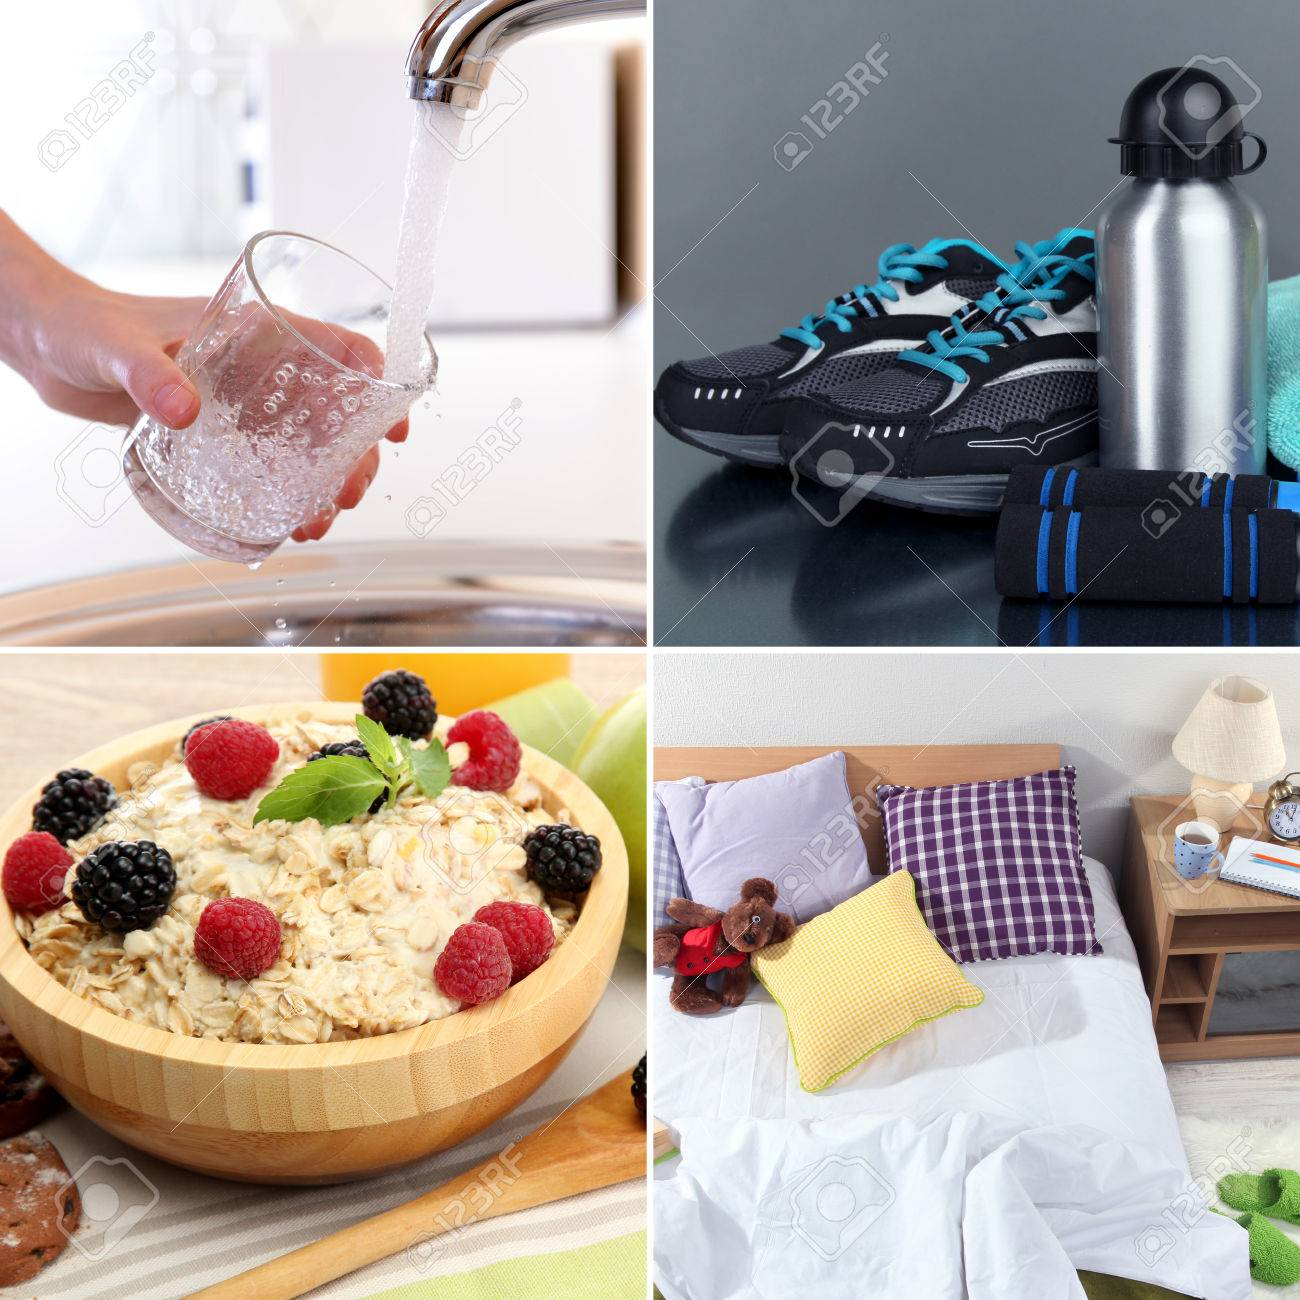 Collage of healthy lifestyle Stock Photo - 25873500